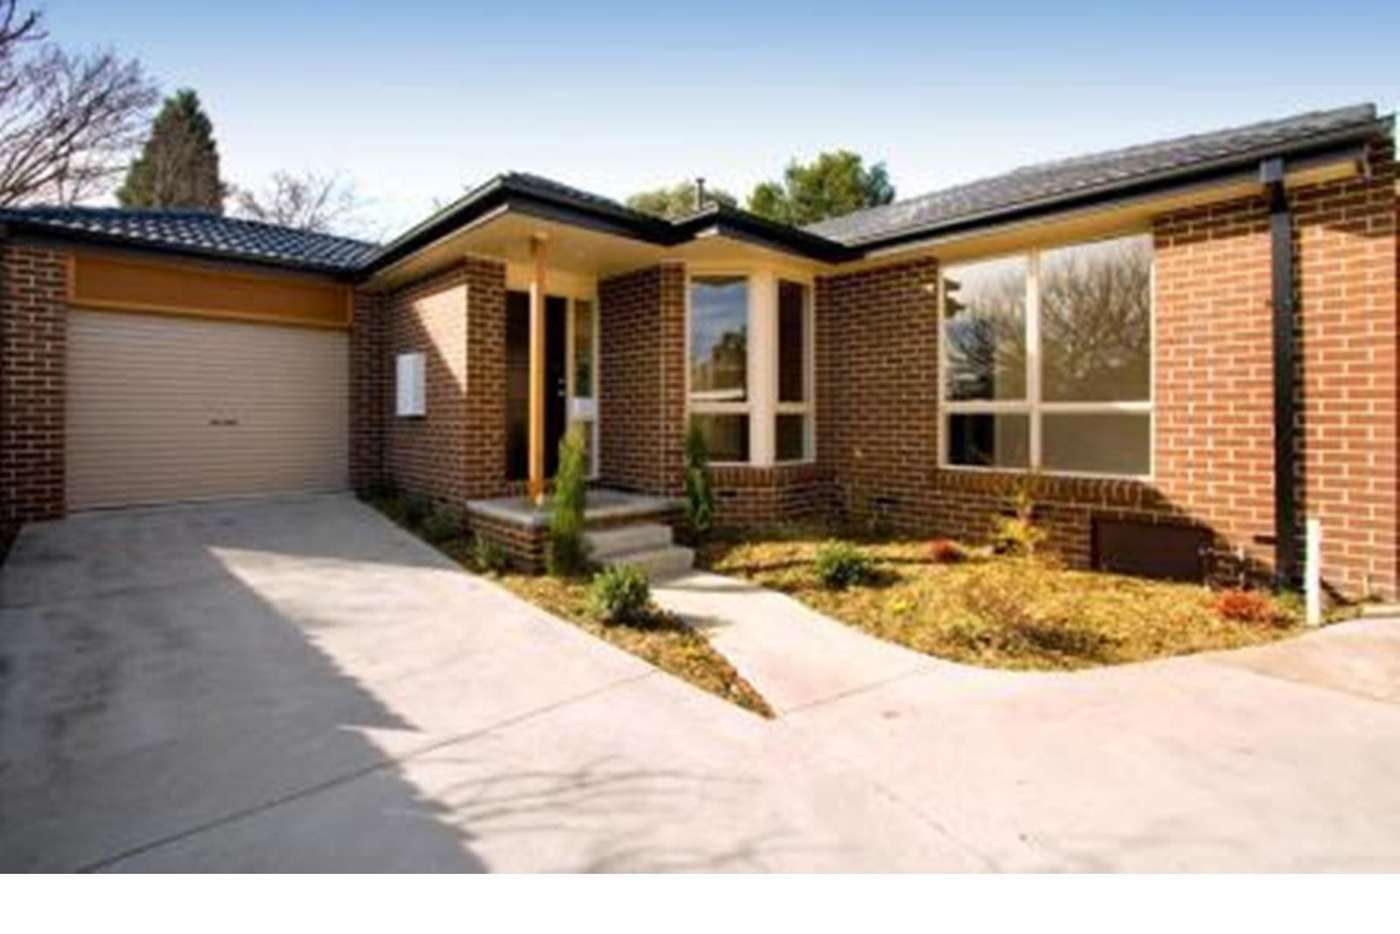 Main view of Homely unit listing, 2/83 Junction Road, Nunawading VIC 3131